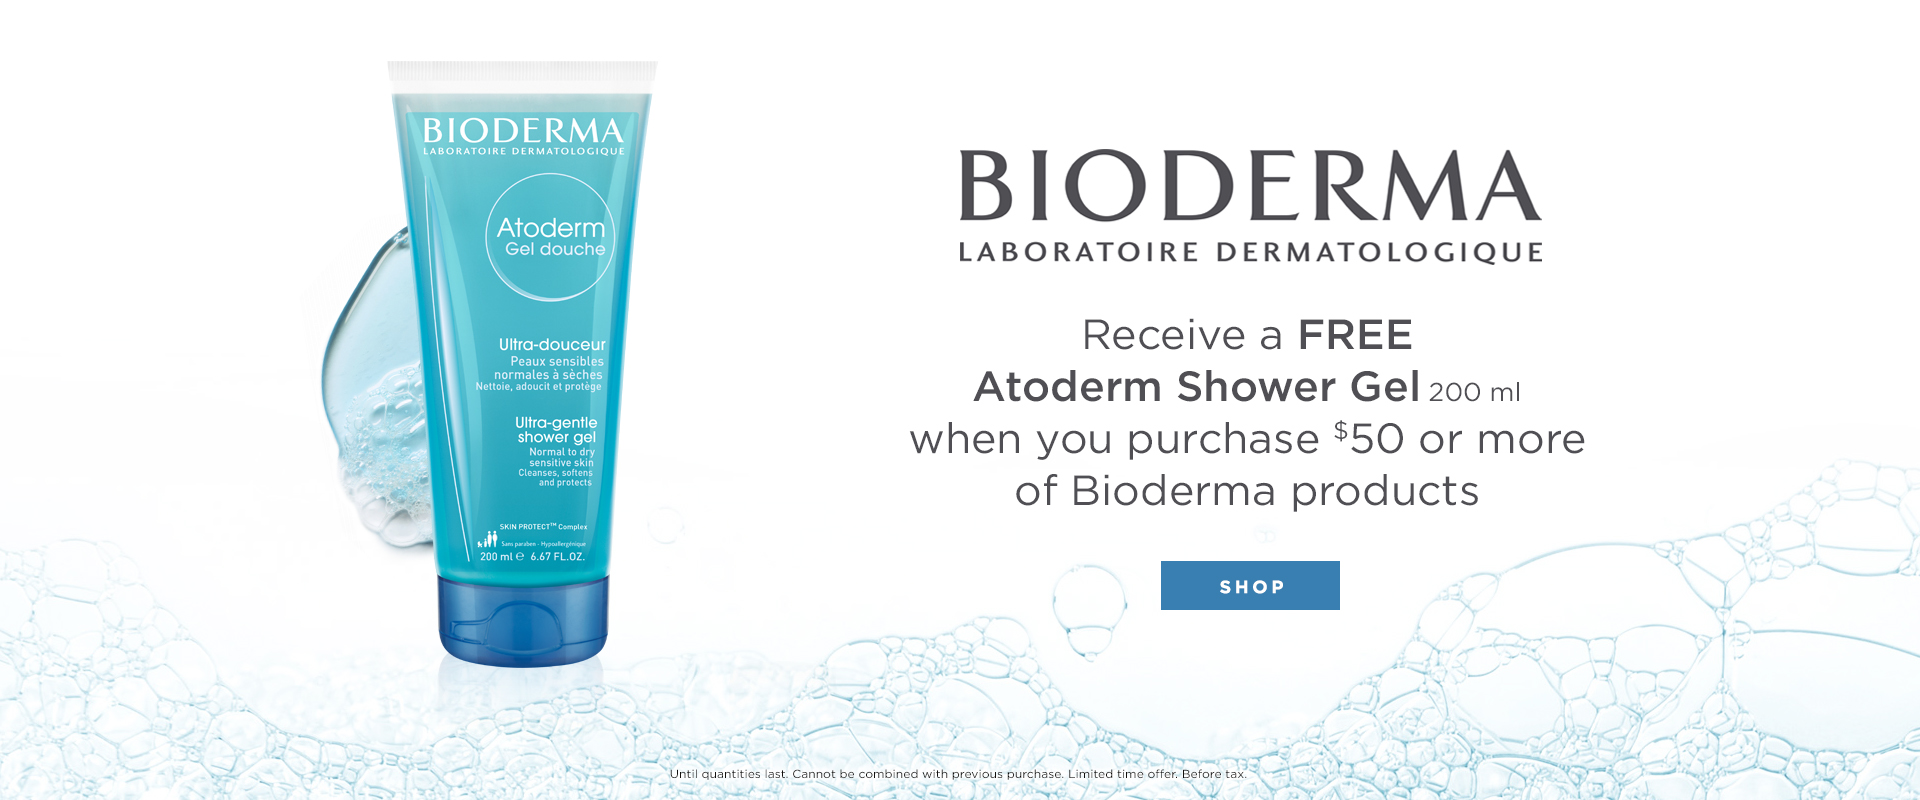 Bioderma Gifts